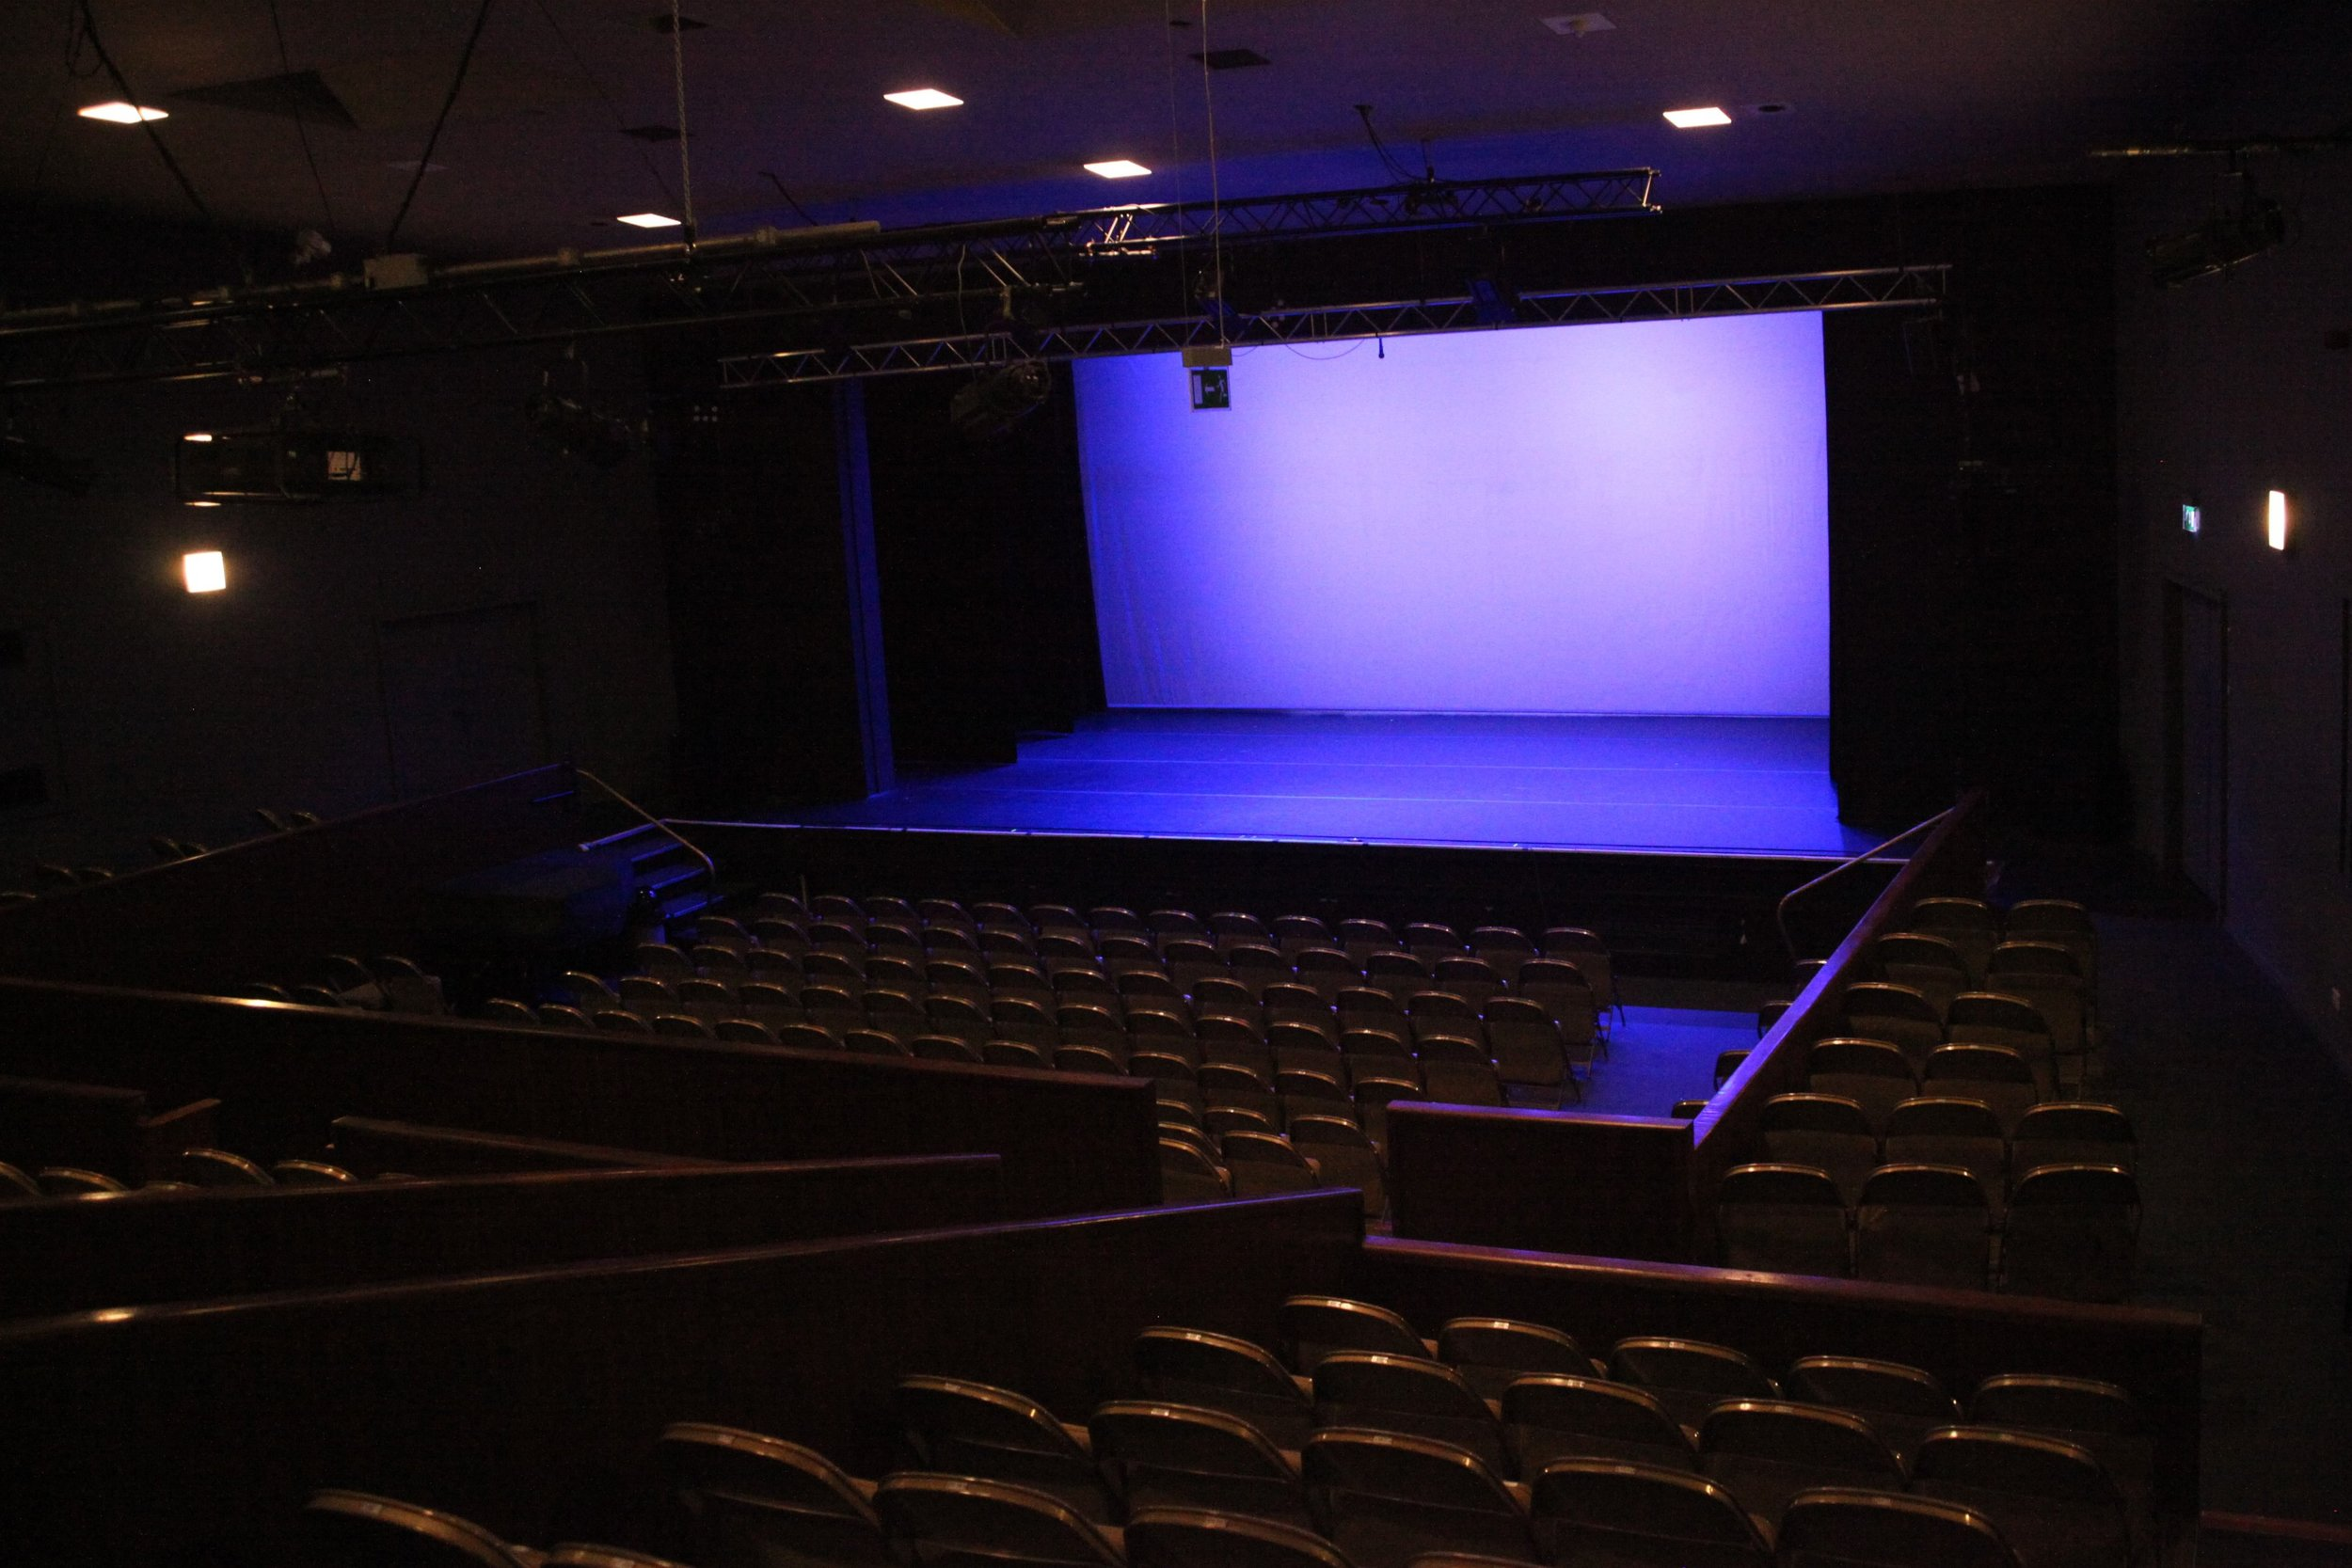 Theatre - We have a 350 capacity studio style theatre - if you require to upscale and need a larger space for an event or performance then the theatre may be available to hire.If you are interested in hiring this space, please contact House Manager Stephanie Walls on stephanie.walls@act-aberdeen.org.uk.To view more photographs of our theatre, CLICK HERE.To view our theatre's Technical Specifications, CLICK HERE.